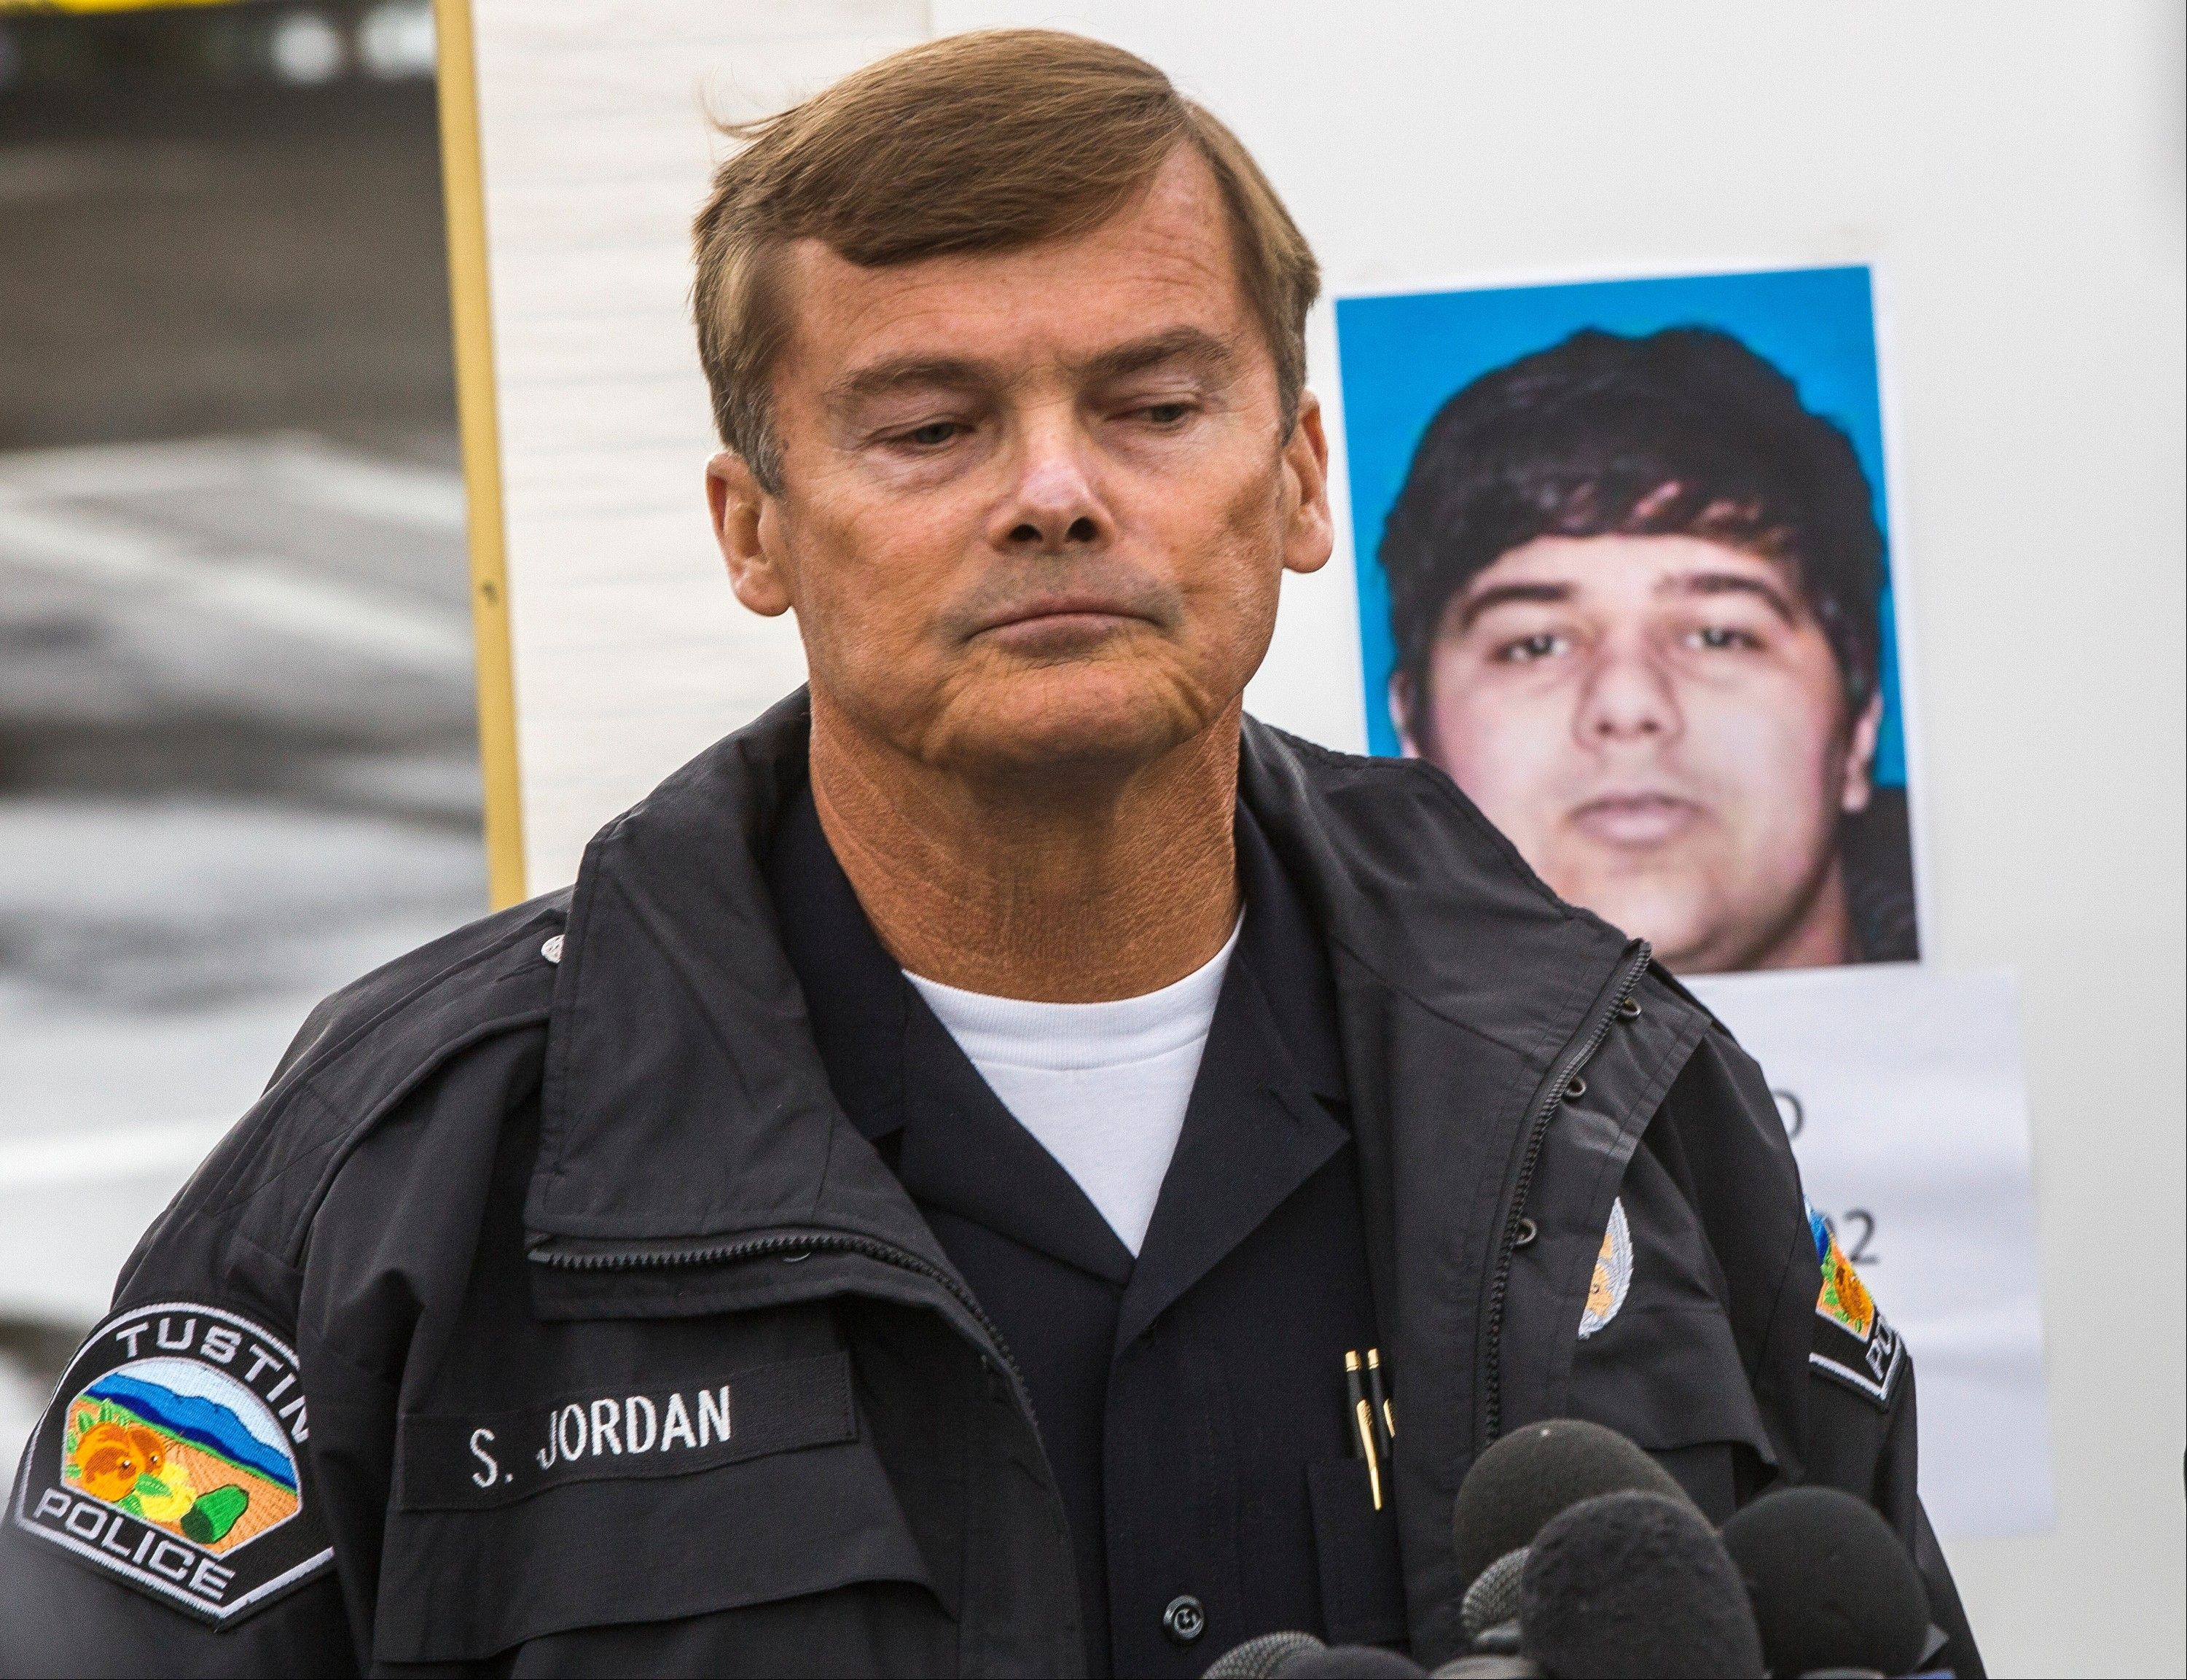 Tustin Police Chief Scott Jordan takes questions about the gunman, Ali Syed, a suspect in a series of shootings during a news conference in Tustin, Calif., Tuesday, Feb. 19, 2013. In less than an hour, Syed, an unemployed part-time student, shot and killed a woman in her home and two commuters during carjackings early Tuesday, shot up vehicles on a Southern California freeway and committed suicide as police closed in on him, authorities said.